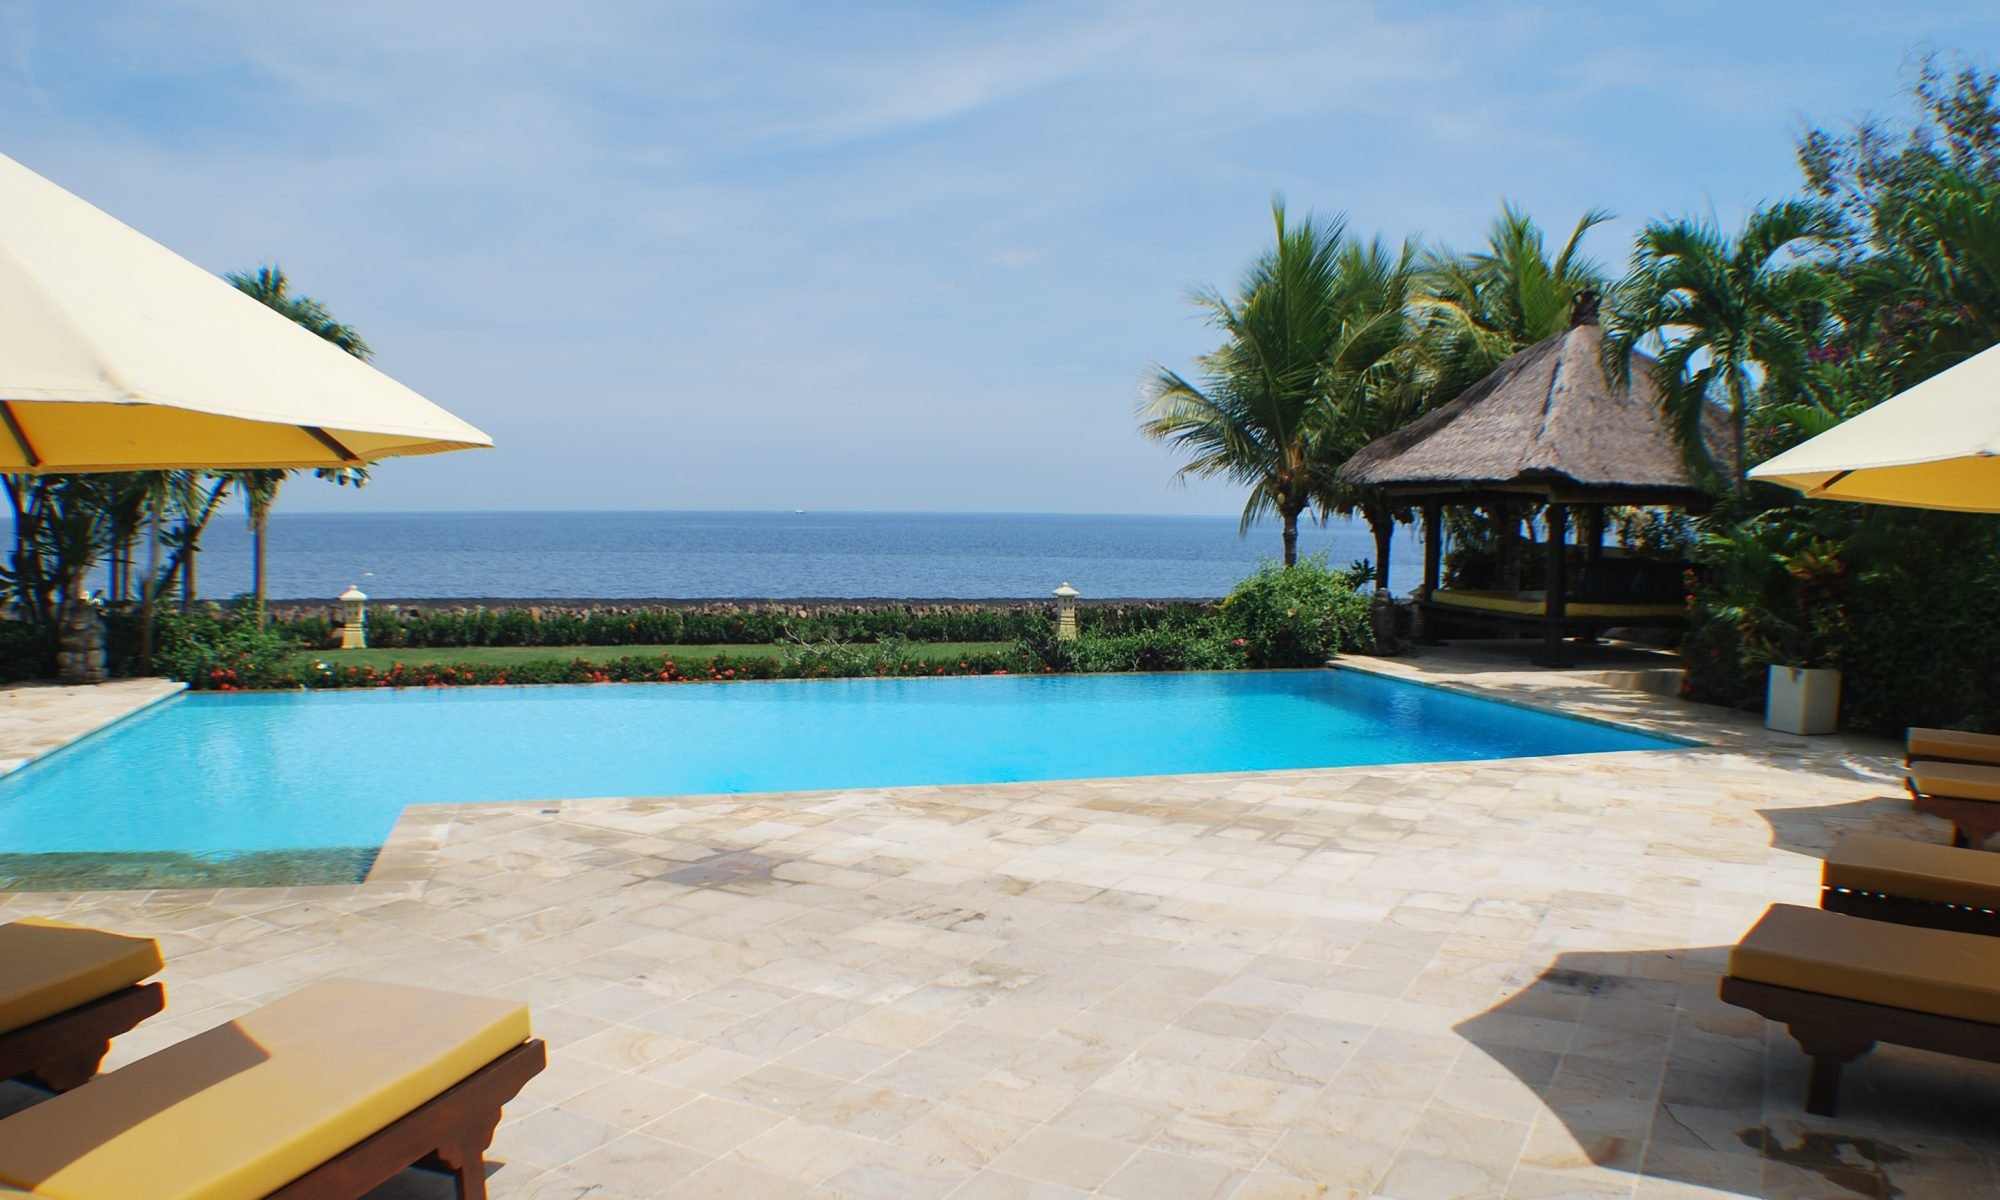 Villa Cerah Bali Holiday House